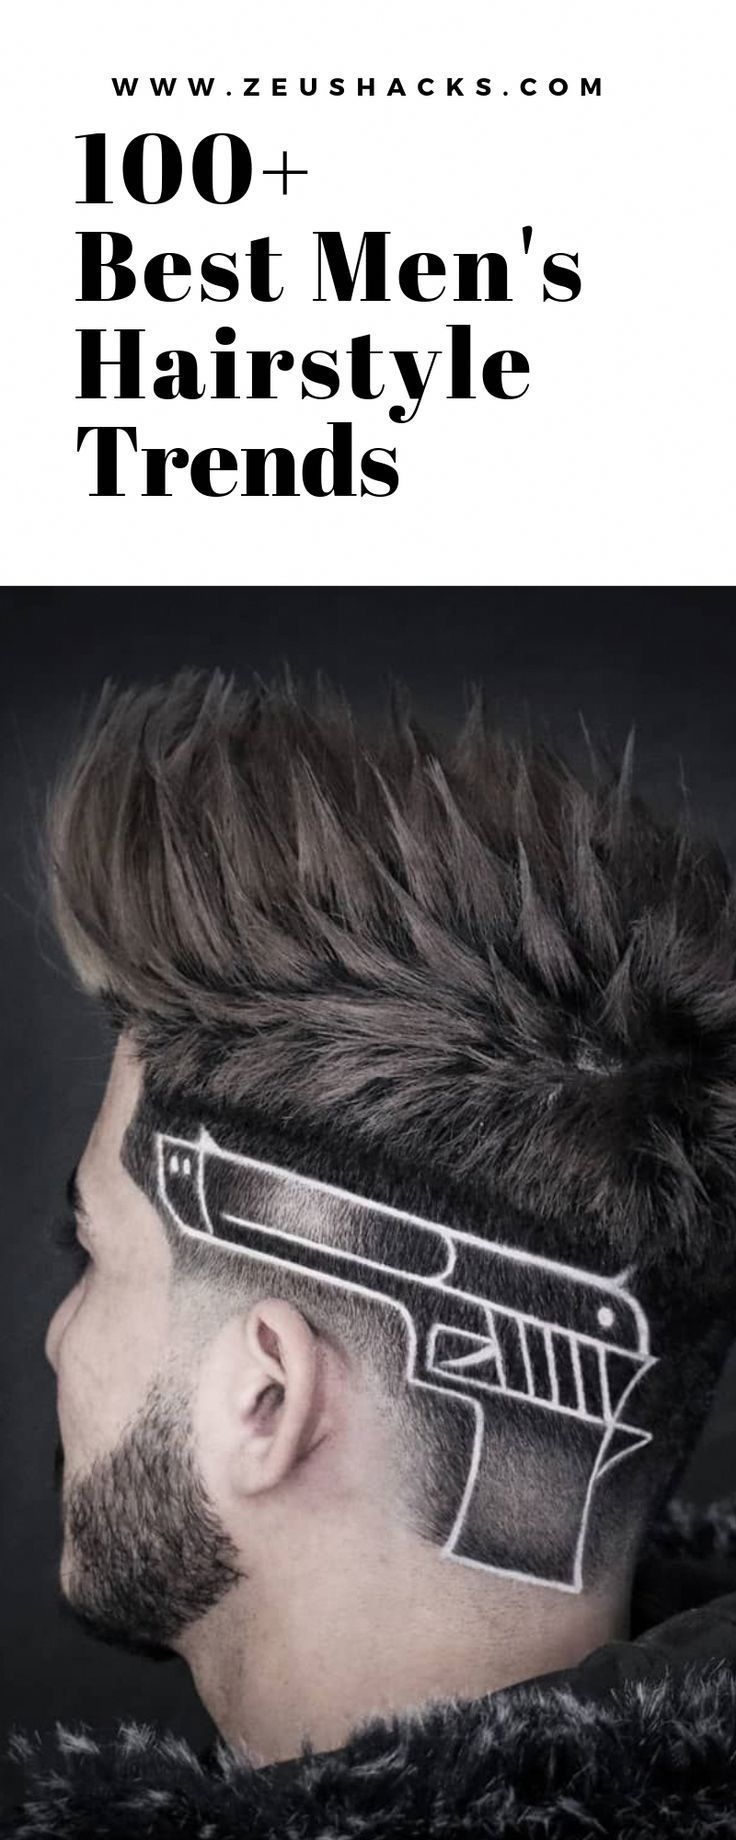 100 Mens Hairstyle Trends 2019 Best Mens Haircuts Inc Skin Fades Frenc